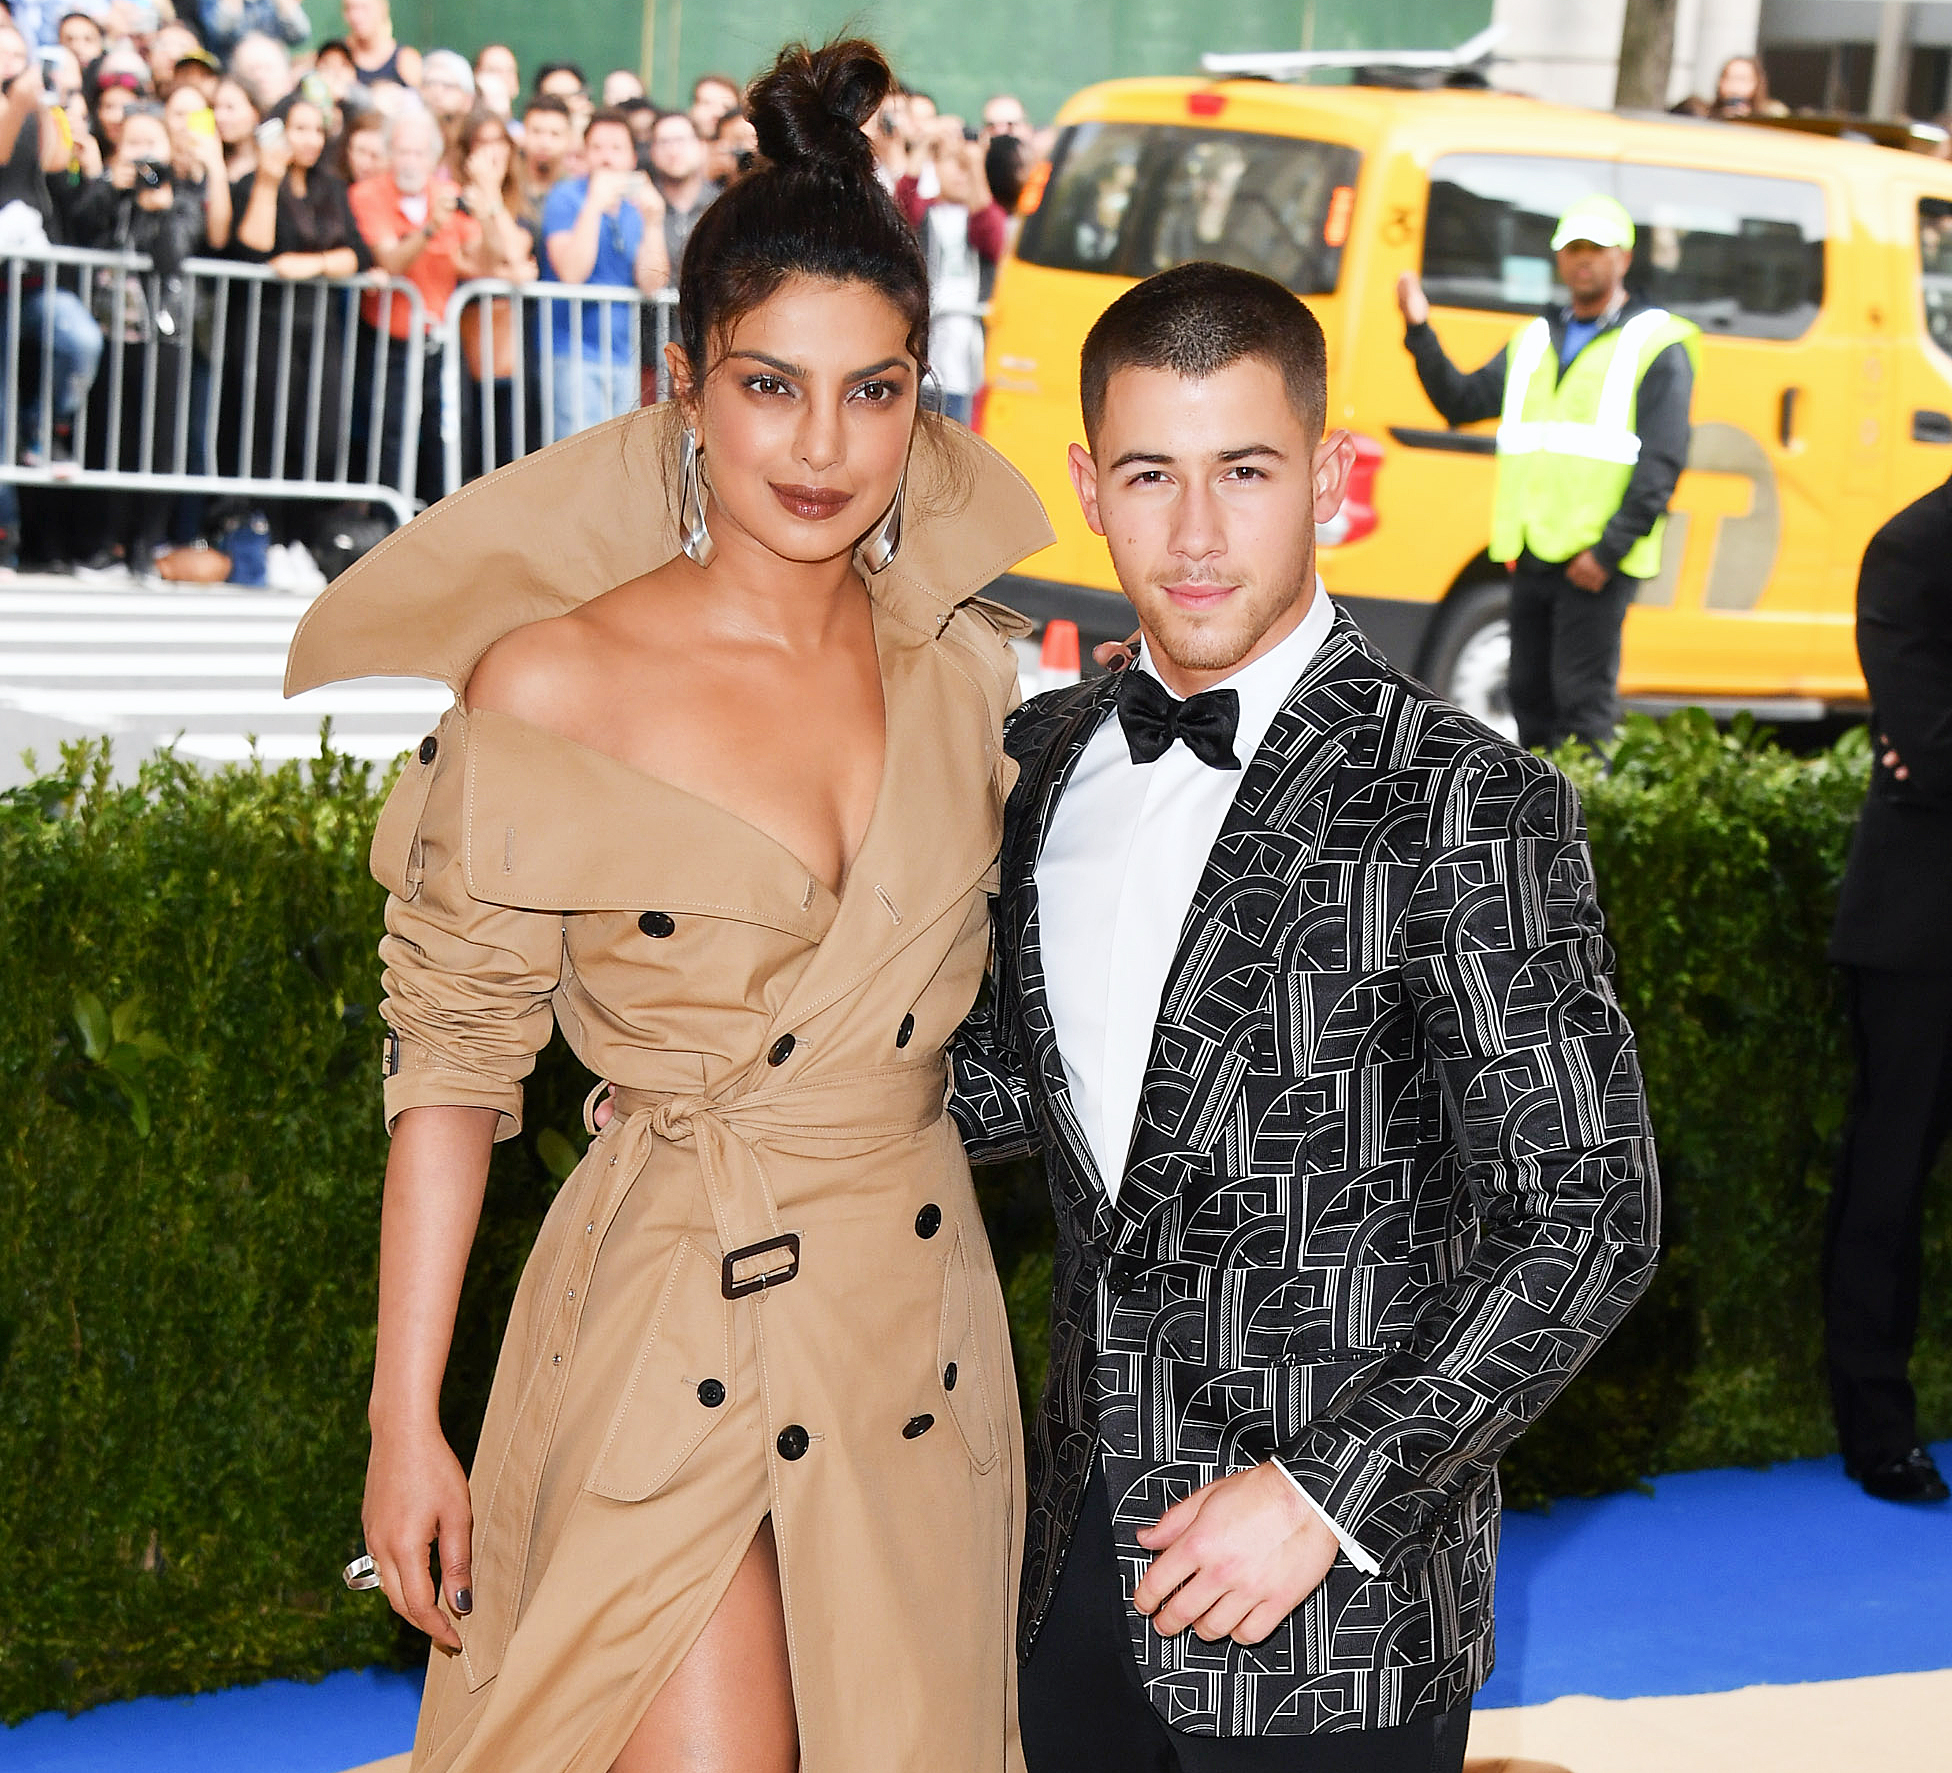 Priyanka Chopra Is Dating Nick Jonas: US Media Reports